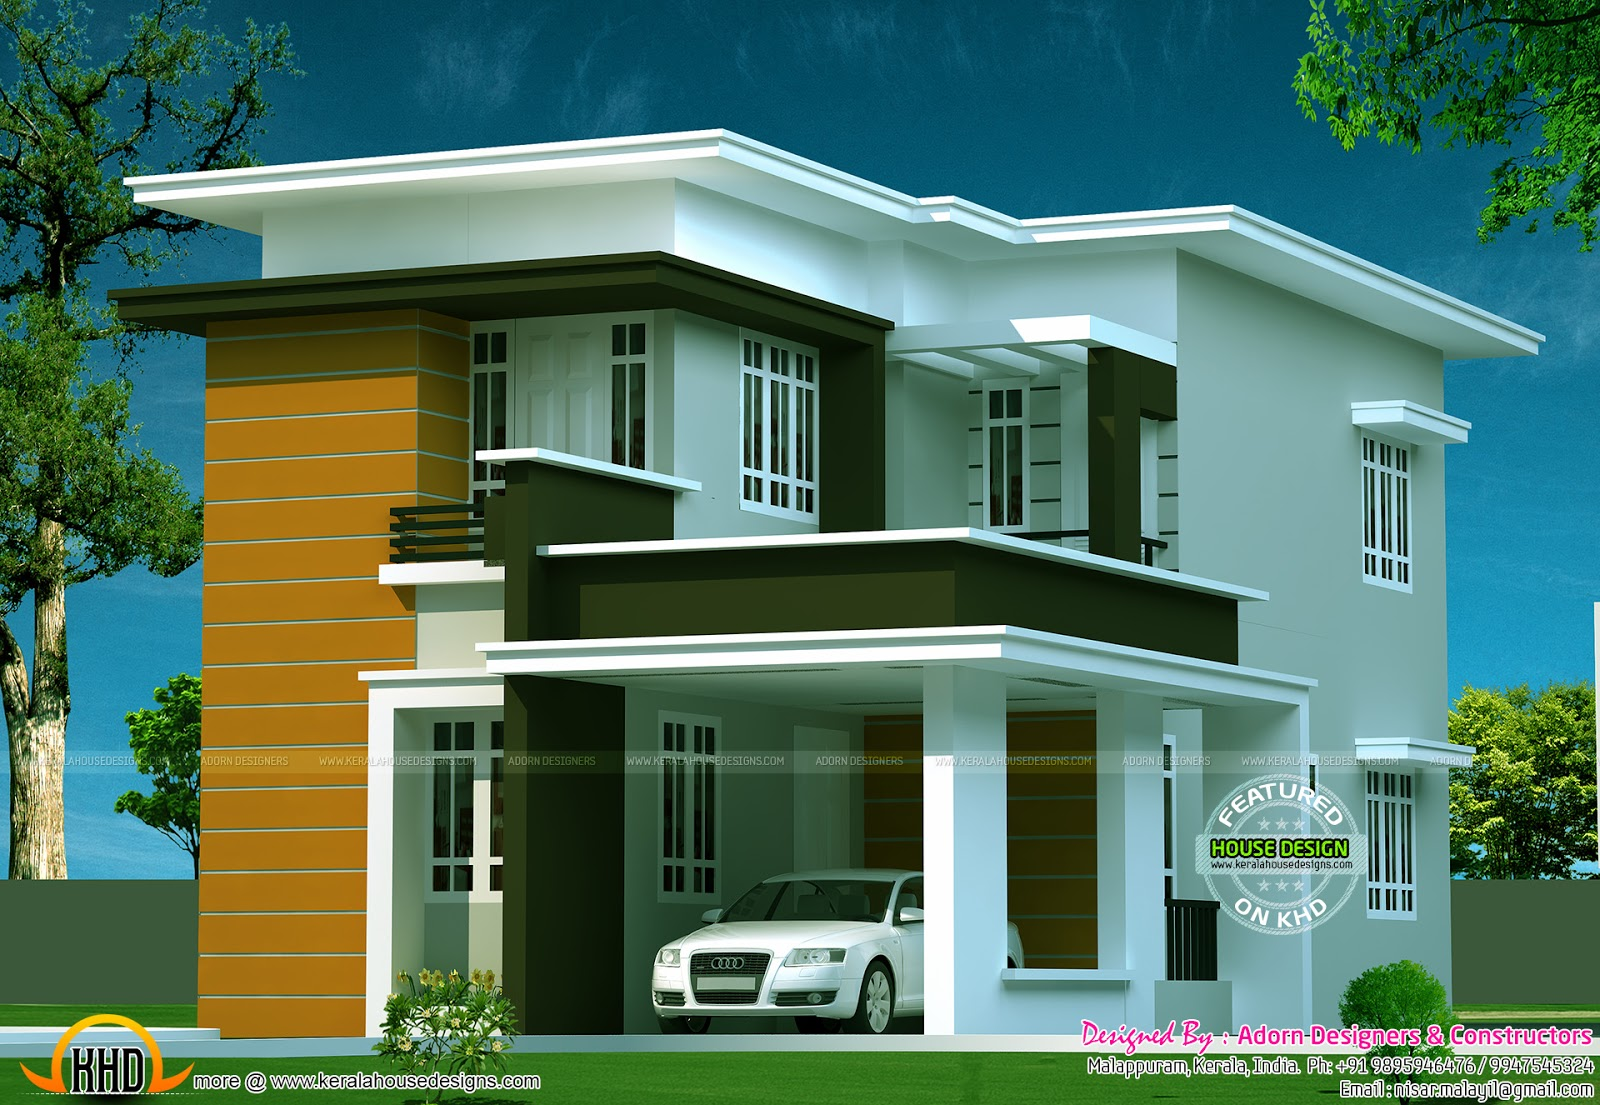 New flat roof house kerala home design and floor plans for Kerala home design flat roof elevation